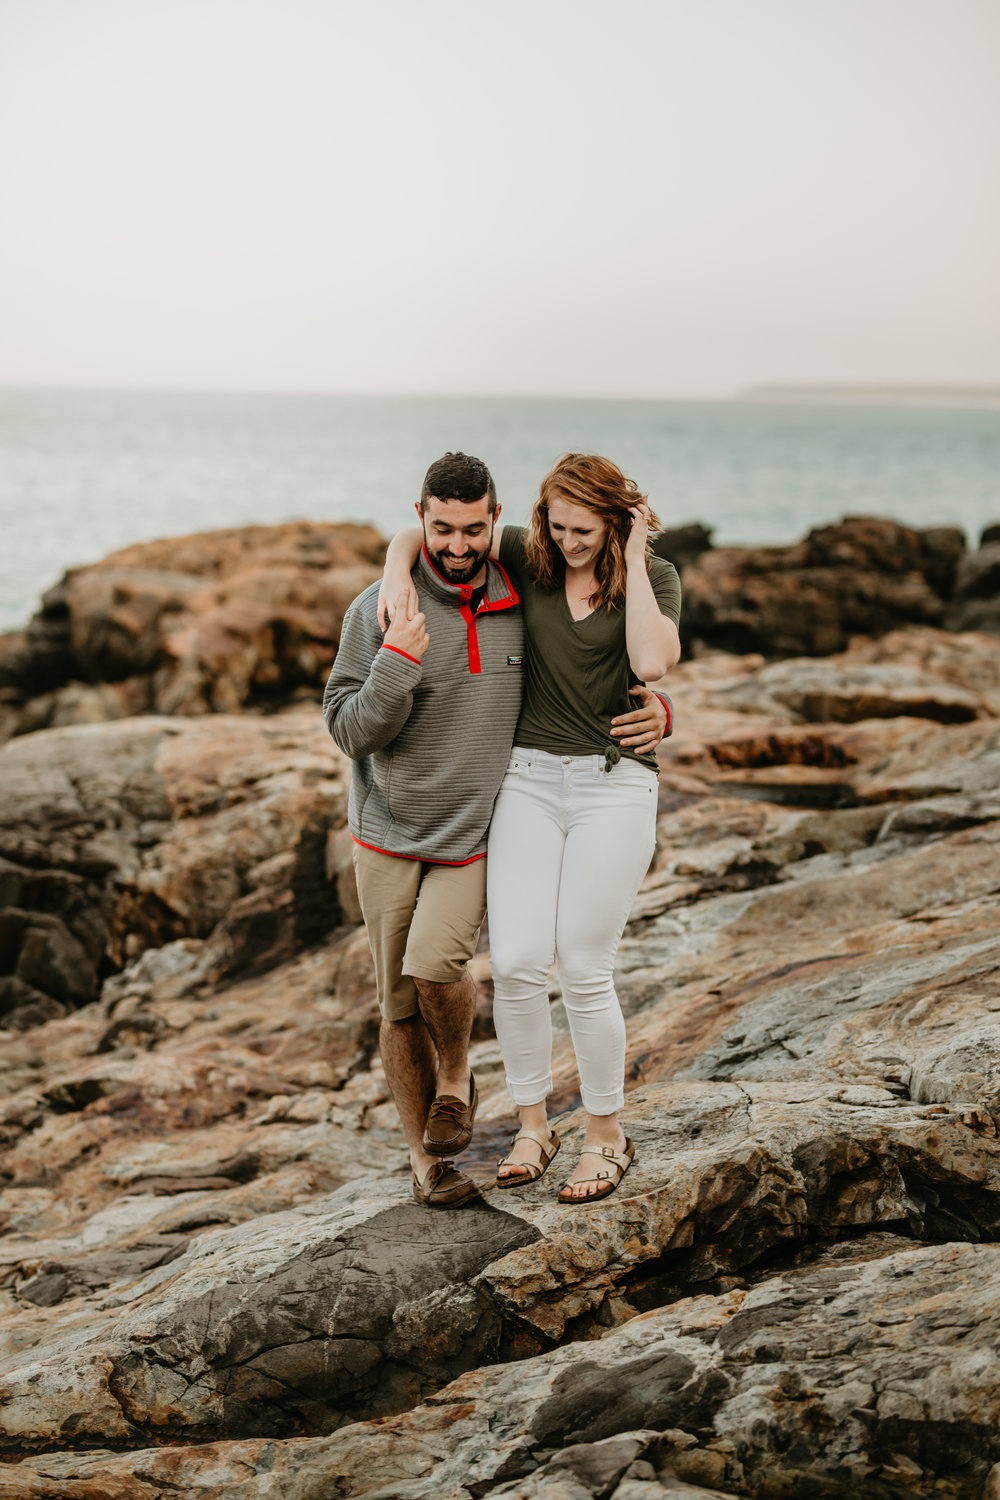 nicole-daacke-photography-acadia-national-park-engagement-photos-session-little-hunters-beach-sunset-cadillac-mountain-thunder-hole-otter-cliffs-couples-session-acadia-elopement-photographer-pine-trees-ocean-maine-73.jpg